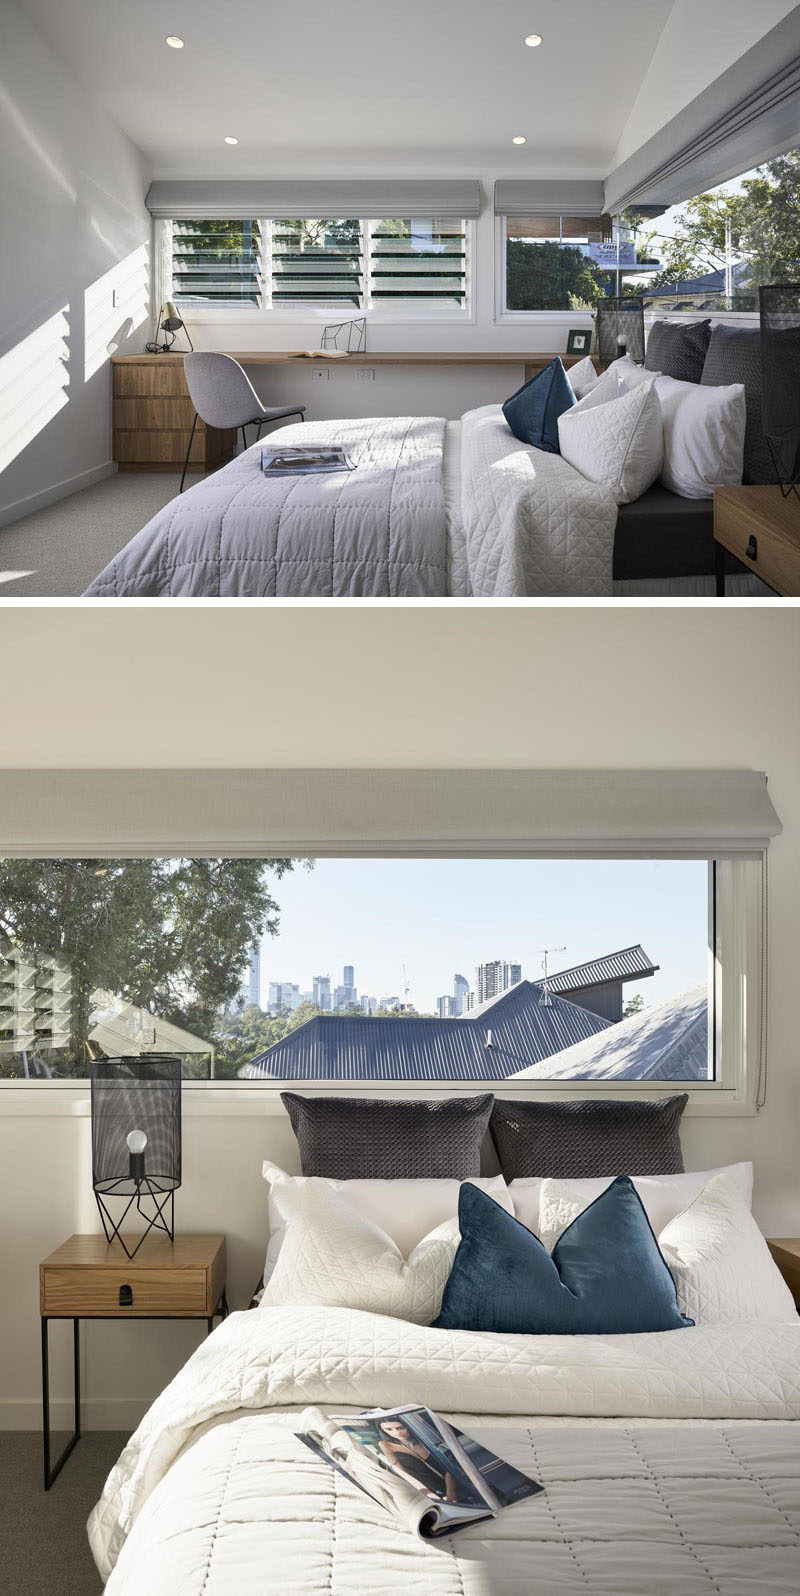 Bedrooom Ideas - In this modern bedroom, there's a desk that's located along one wall, while the windows wrap around the corner and provide city views. #BedroomIdeas #ModernBedroom #Desk #Windows